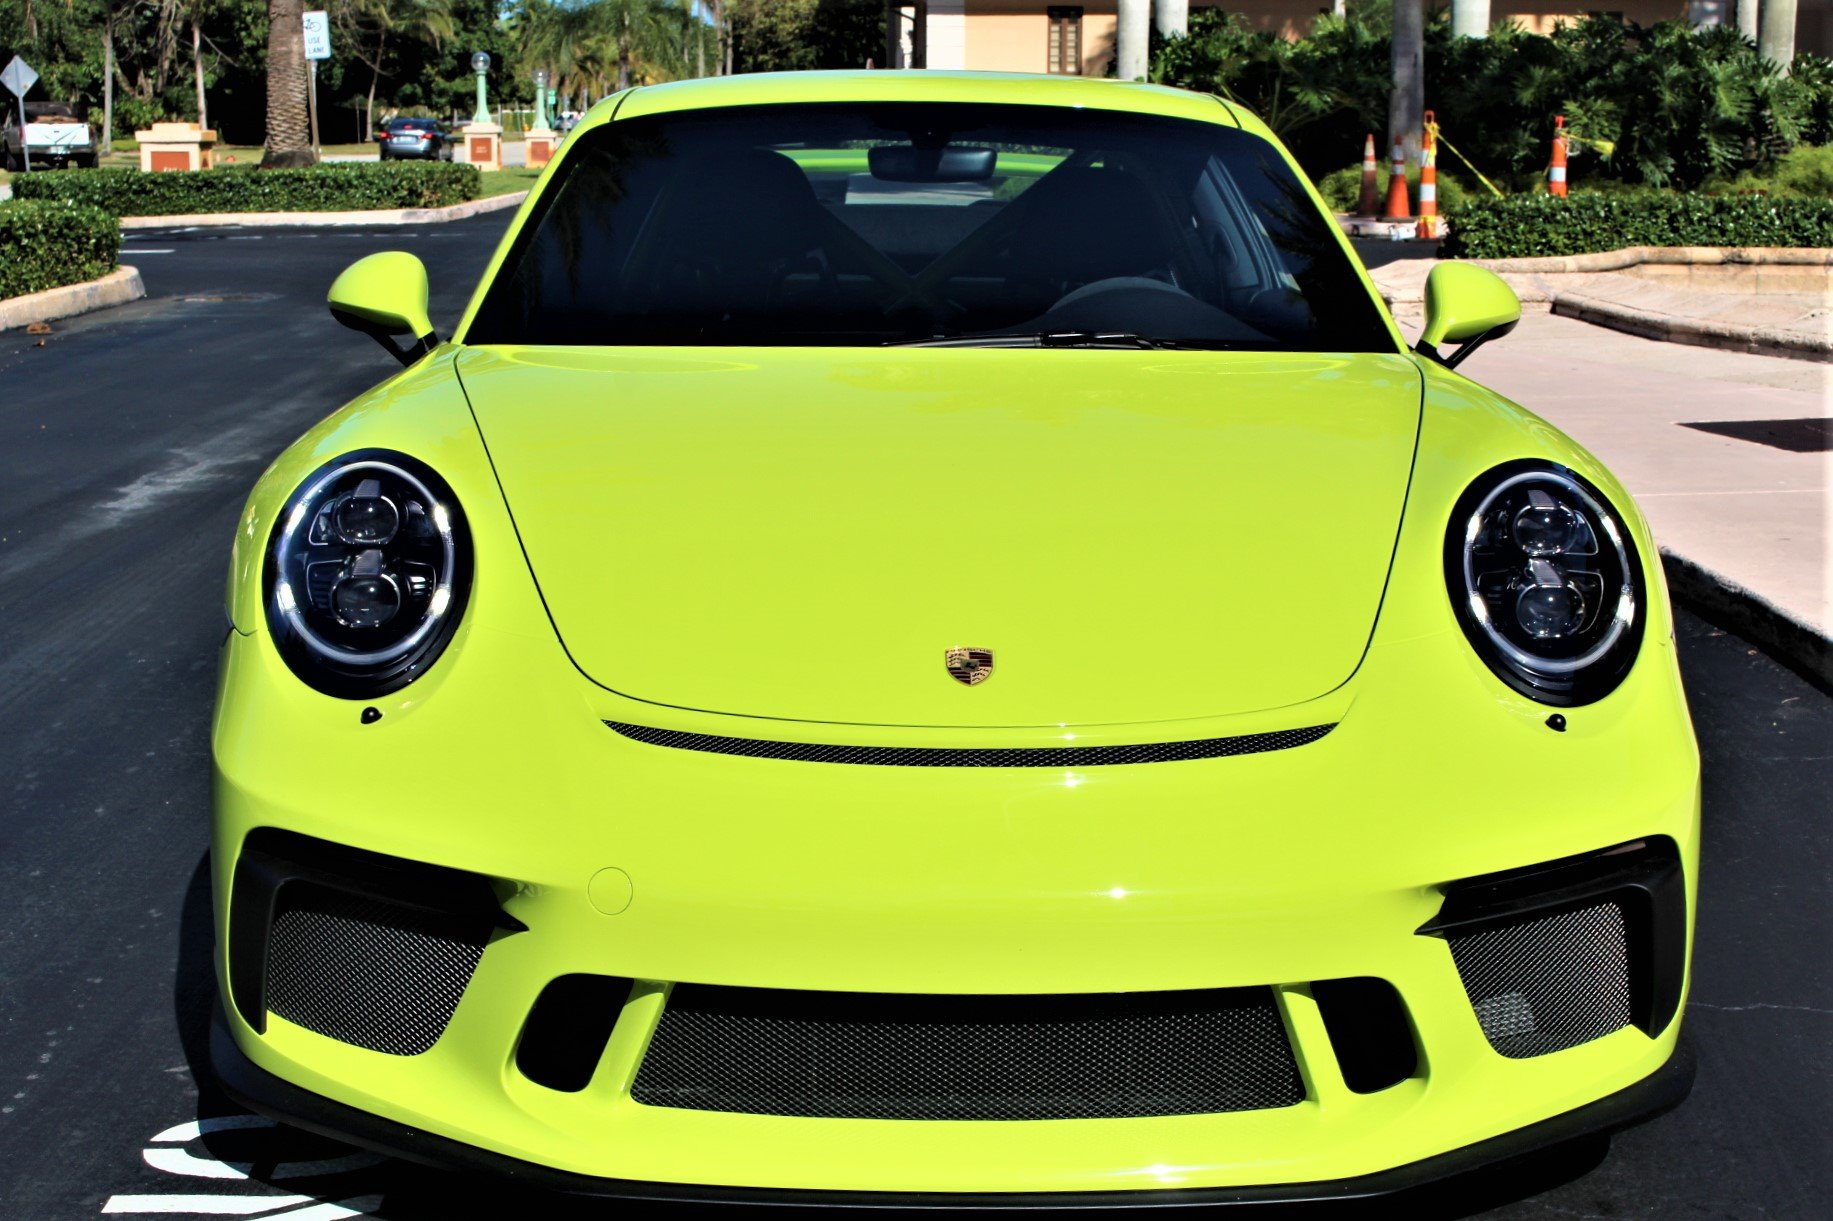 Used 2018 Porsche 911 GT3 for sale $169,850 at The Gables Sports Cars in Miami FL 33146 3